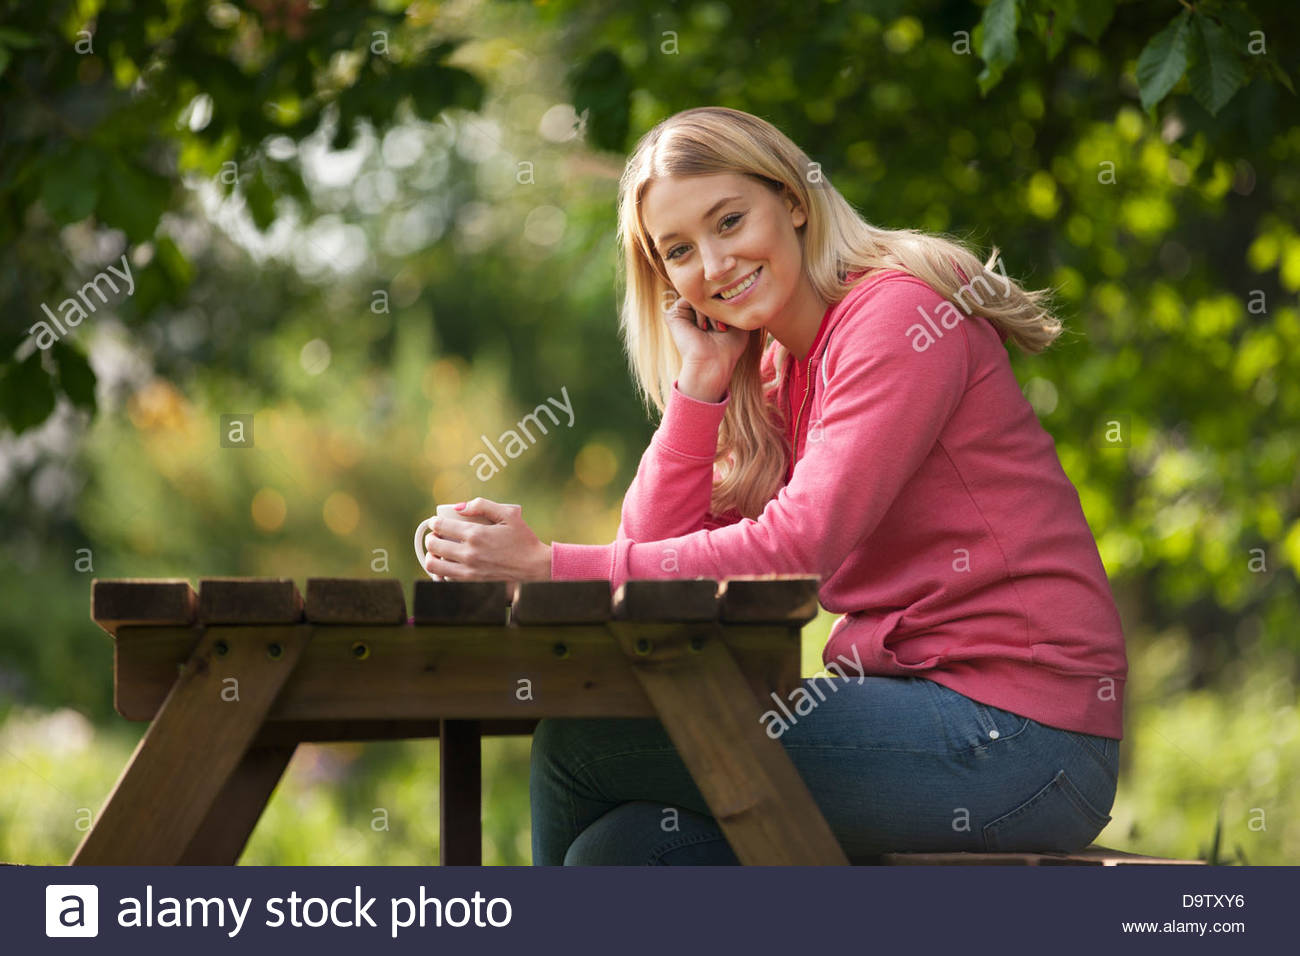 A young woman sitting at a garden bench drinking a hot beverage, smiling to camera - Stock Image